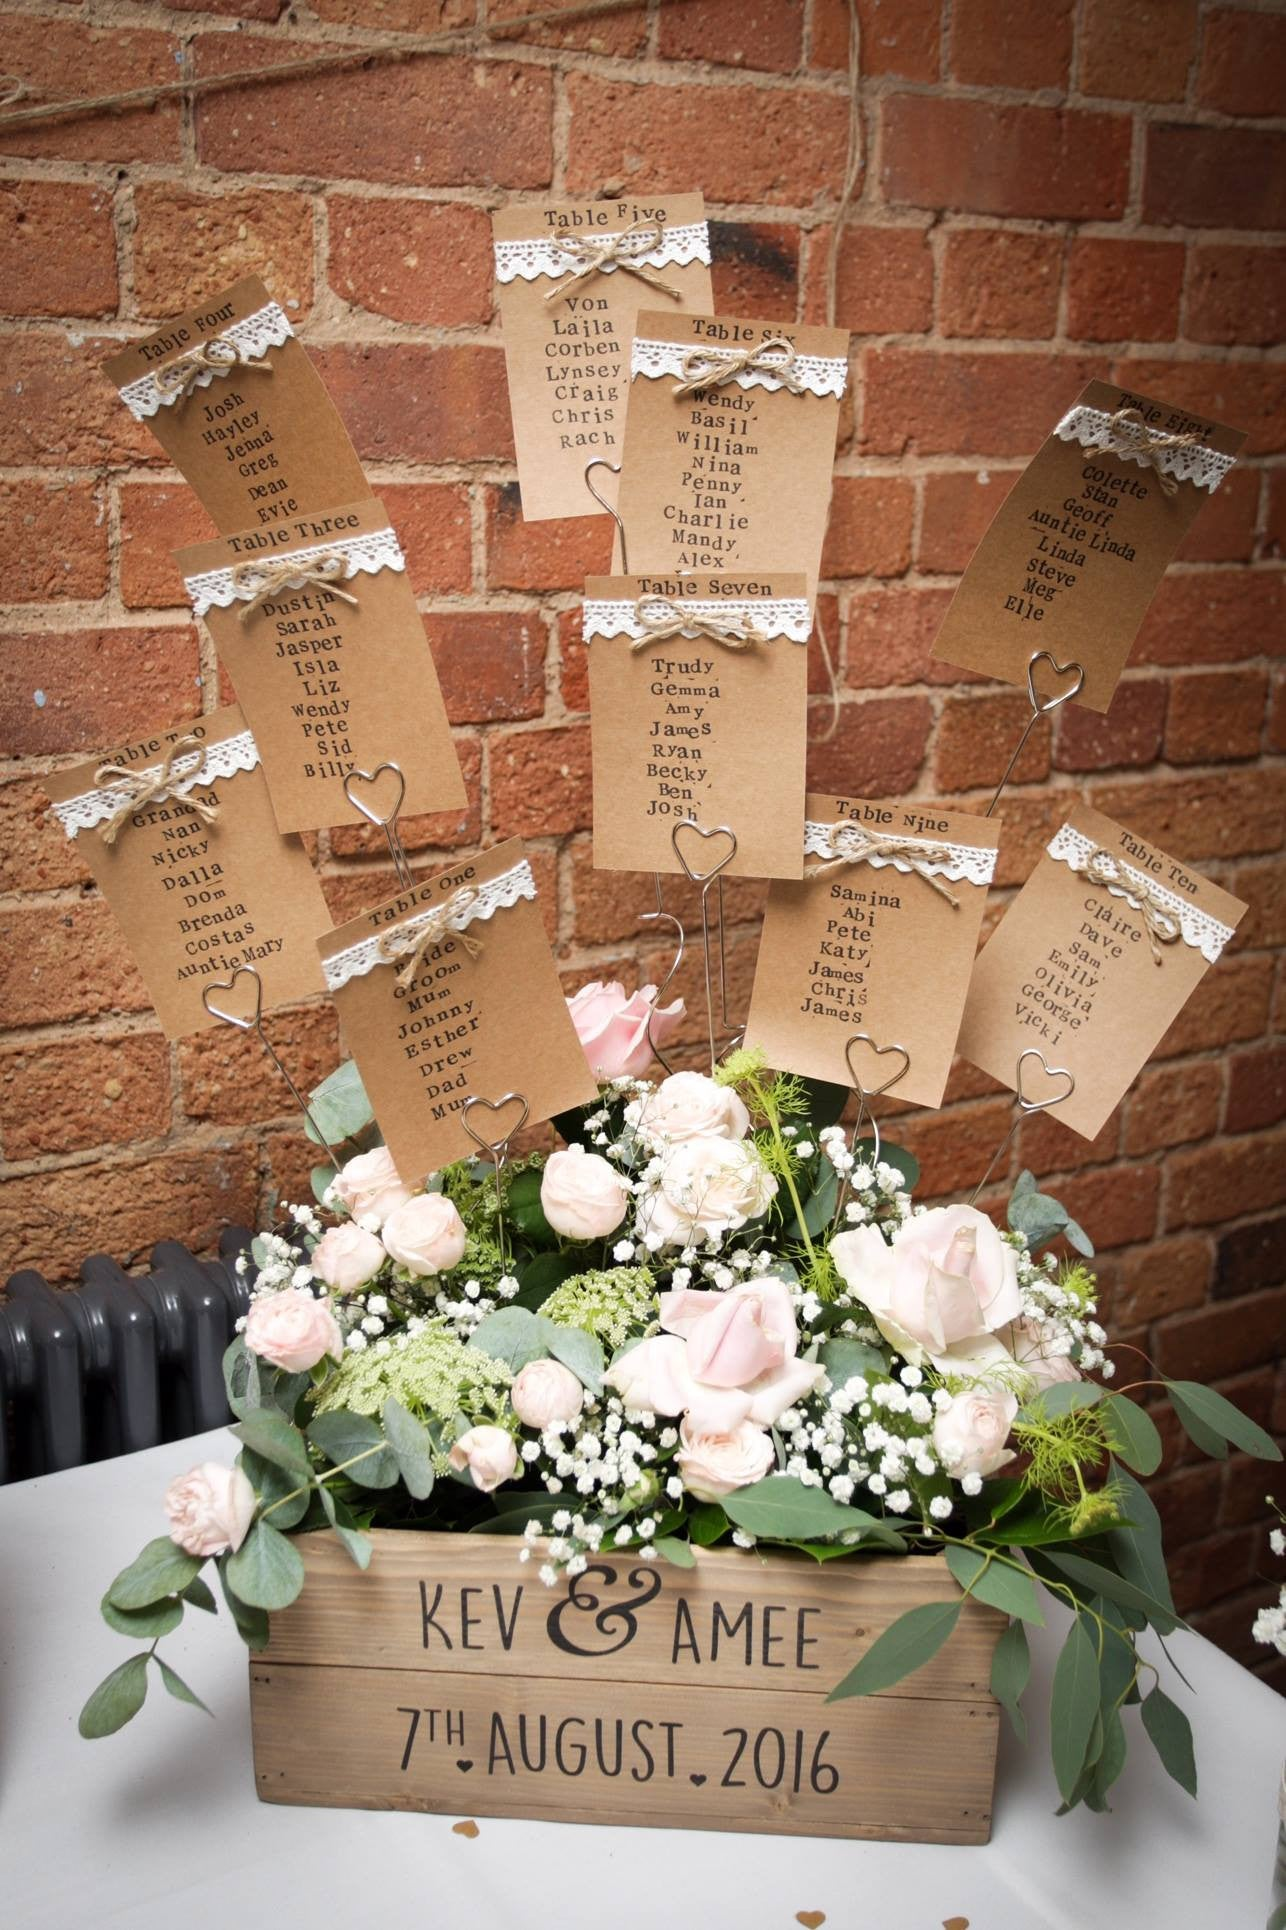 Wooden crate table seating arrangement with pink Roses, white Gypsophila and foliage.